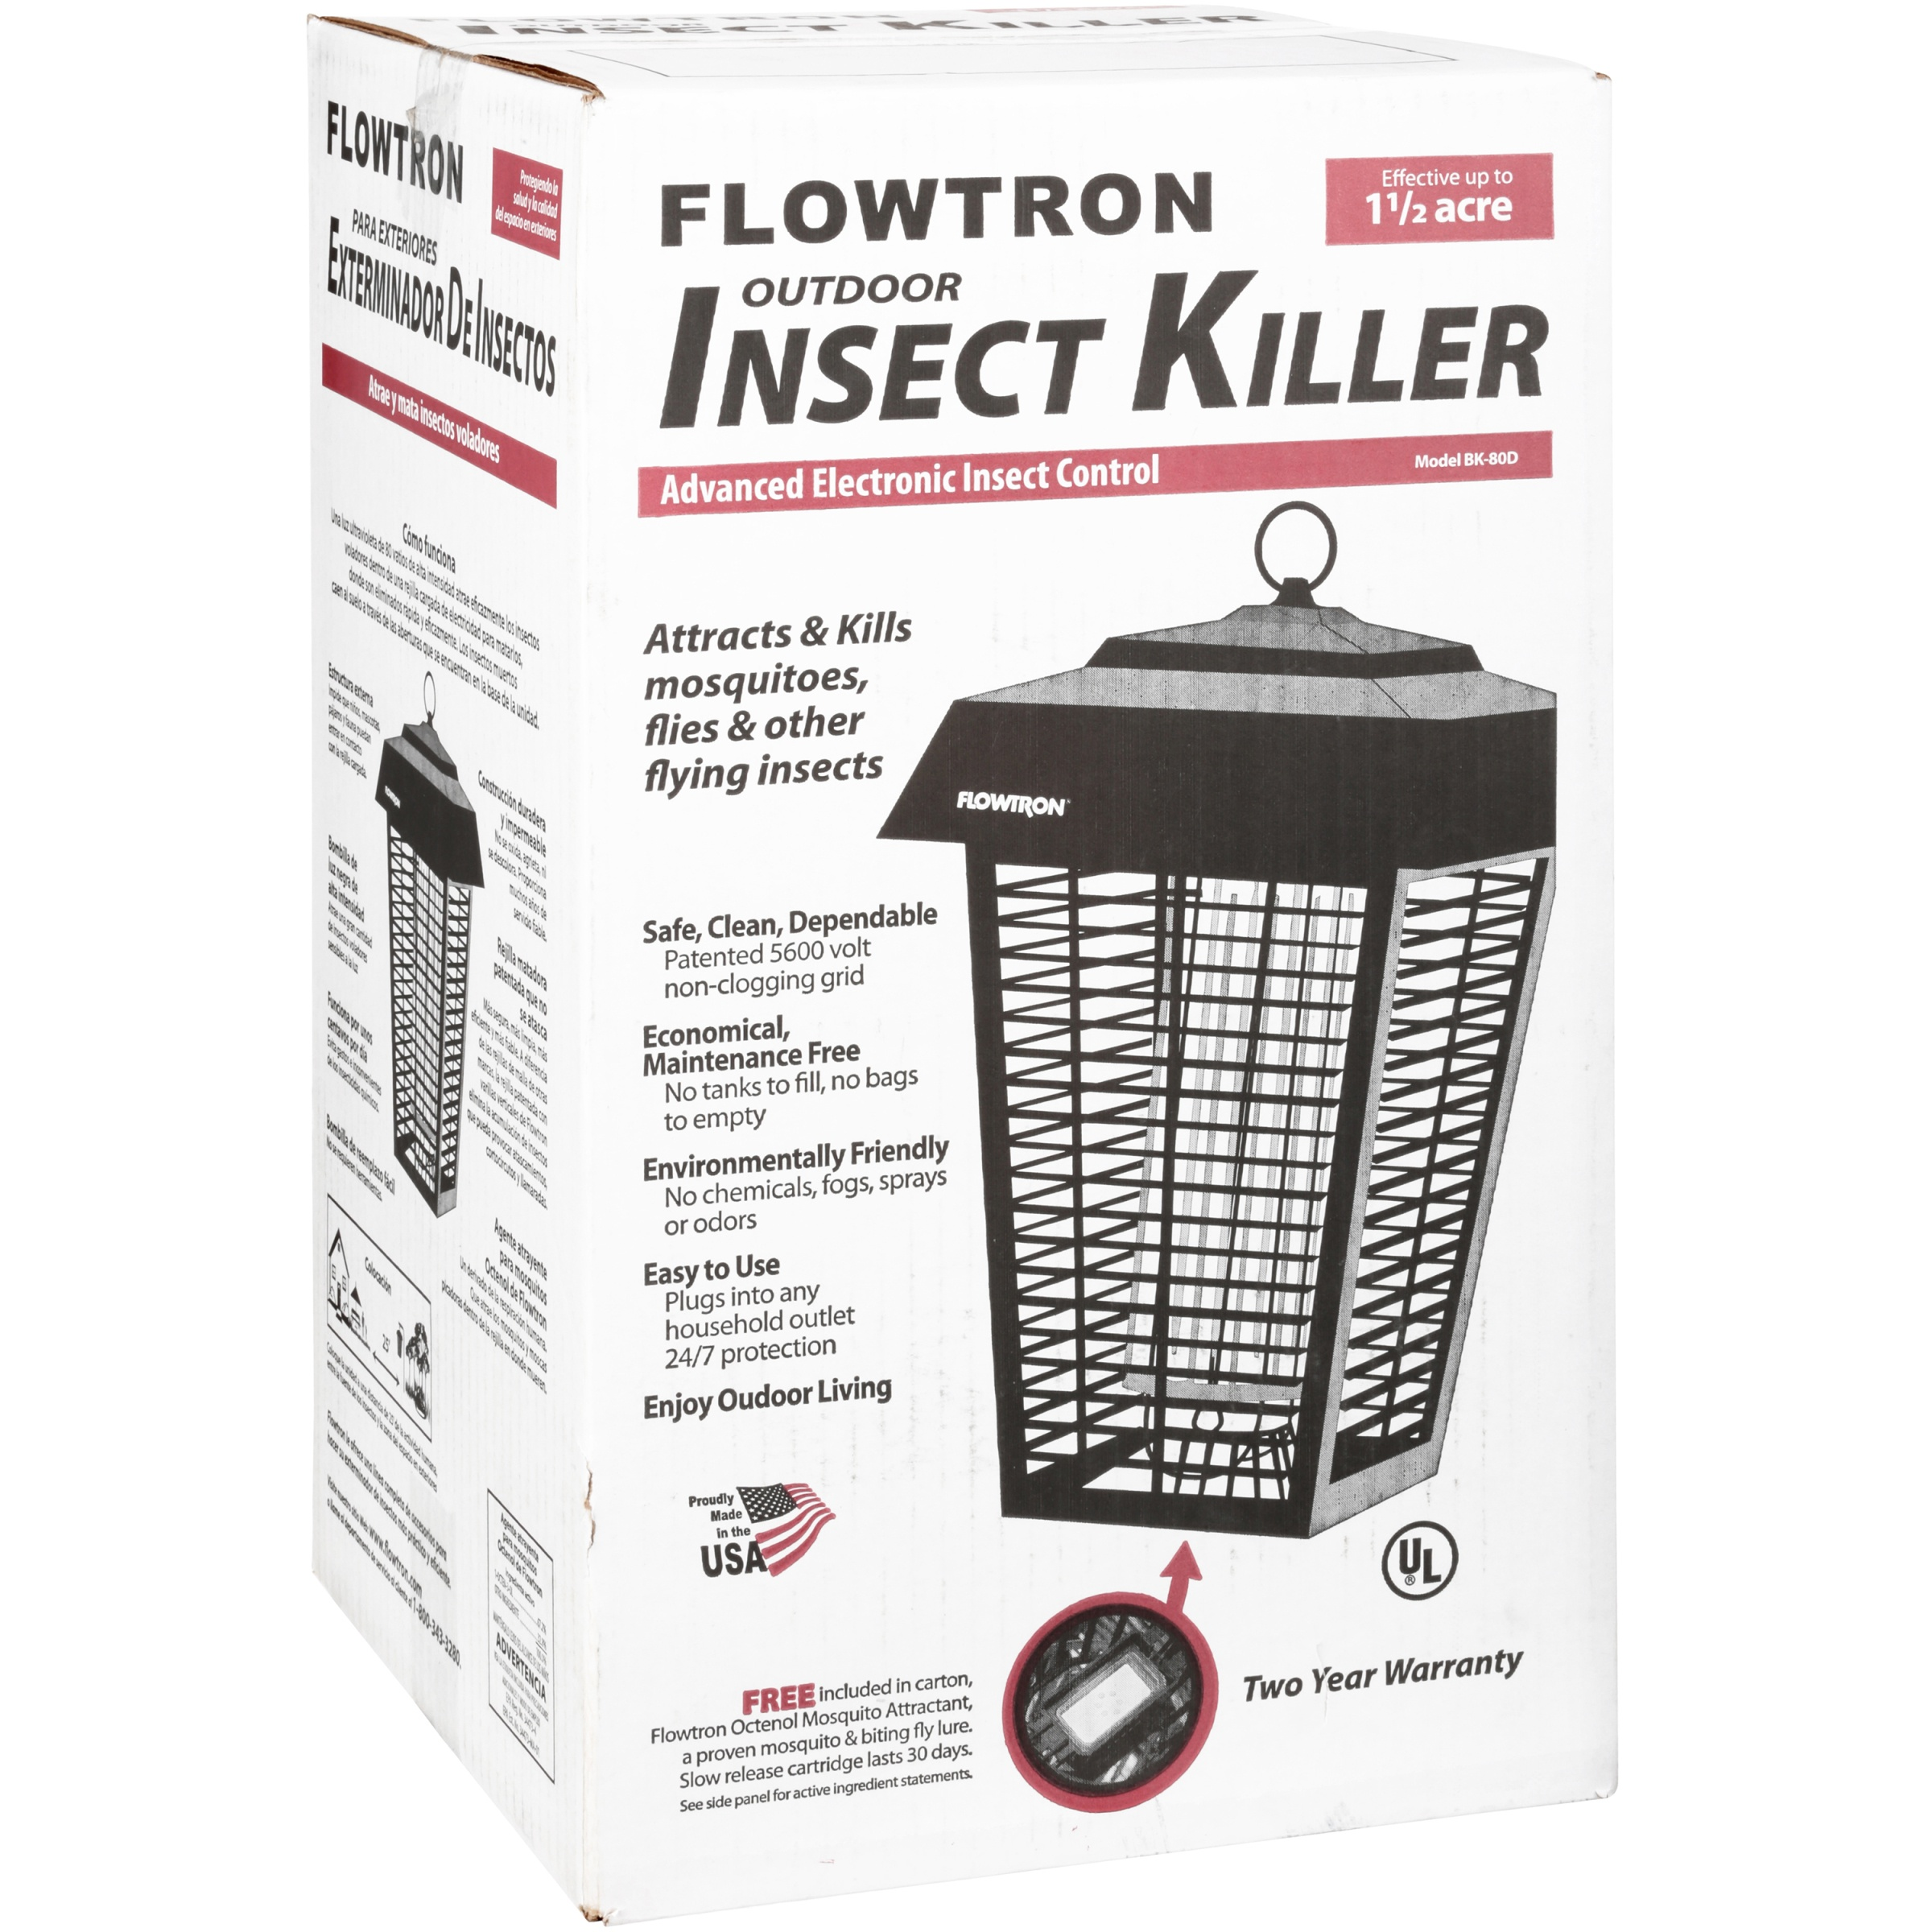 Flowtron Electric Insect Killer 15 Acres Mosquito Circuit Is Composed Of The Energy Saving Lamp